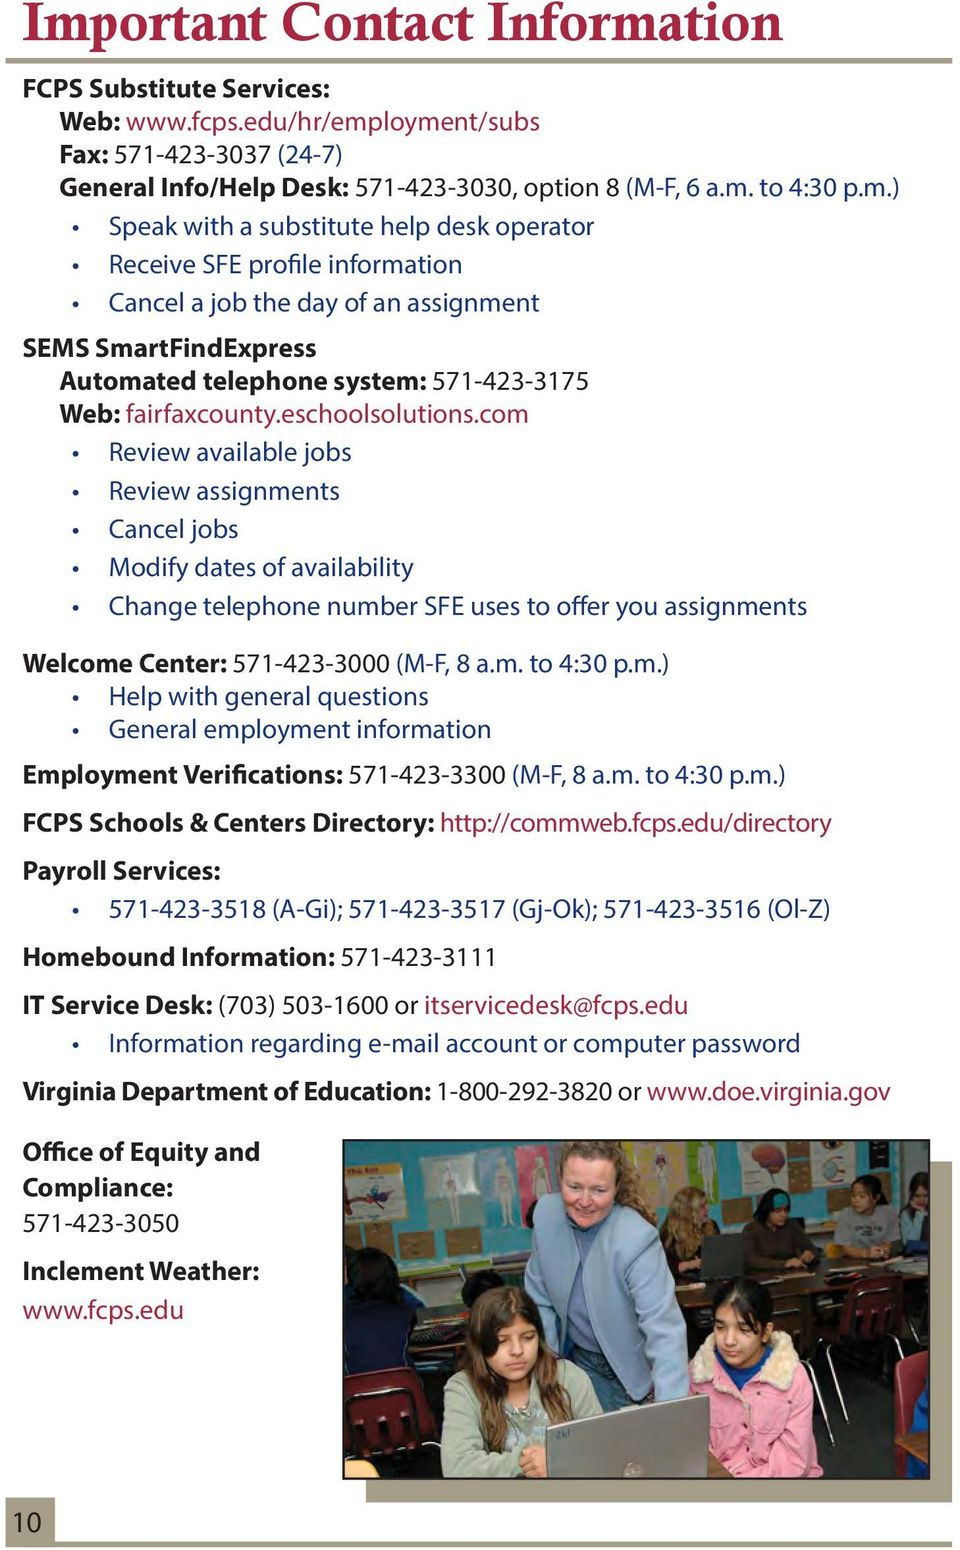 m. to 4:30 p.m.) Help with general questions General employment information Employment Verifications: 571-423-3300 (M-F, 8 a.m. to 4:30 p.m.) FCPS Schools & Centers Directory: http://commweb.fcps.